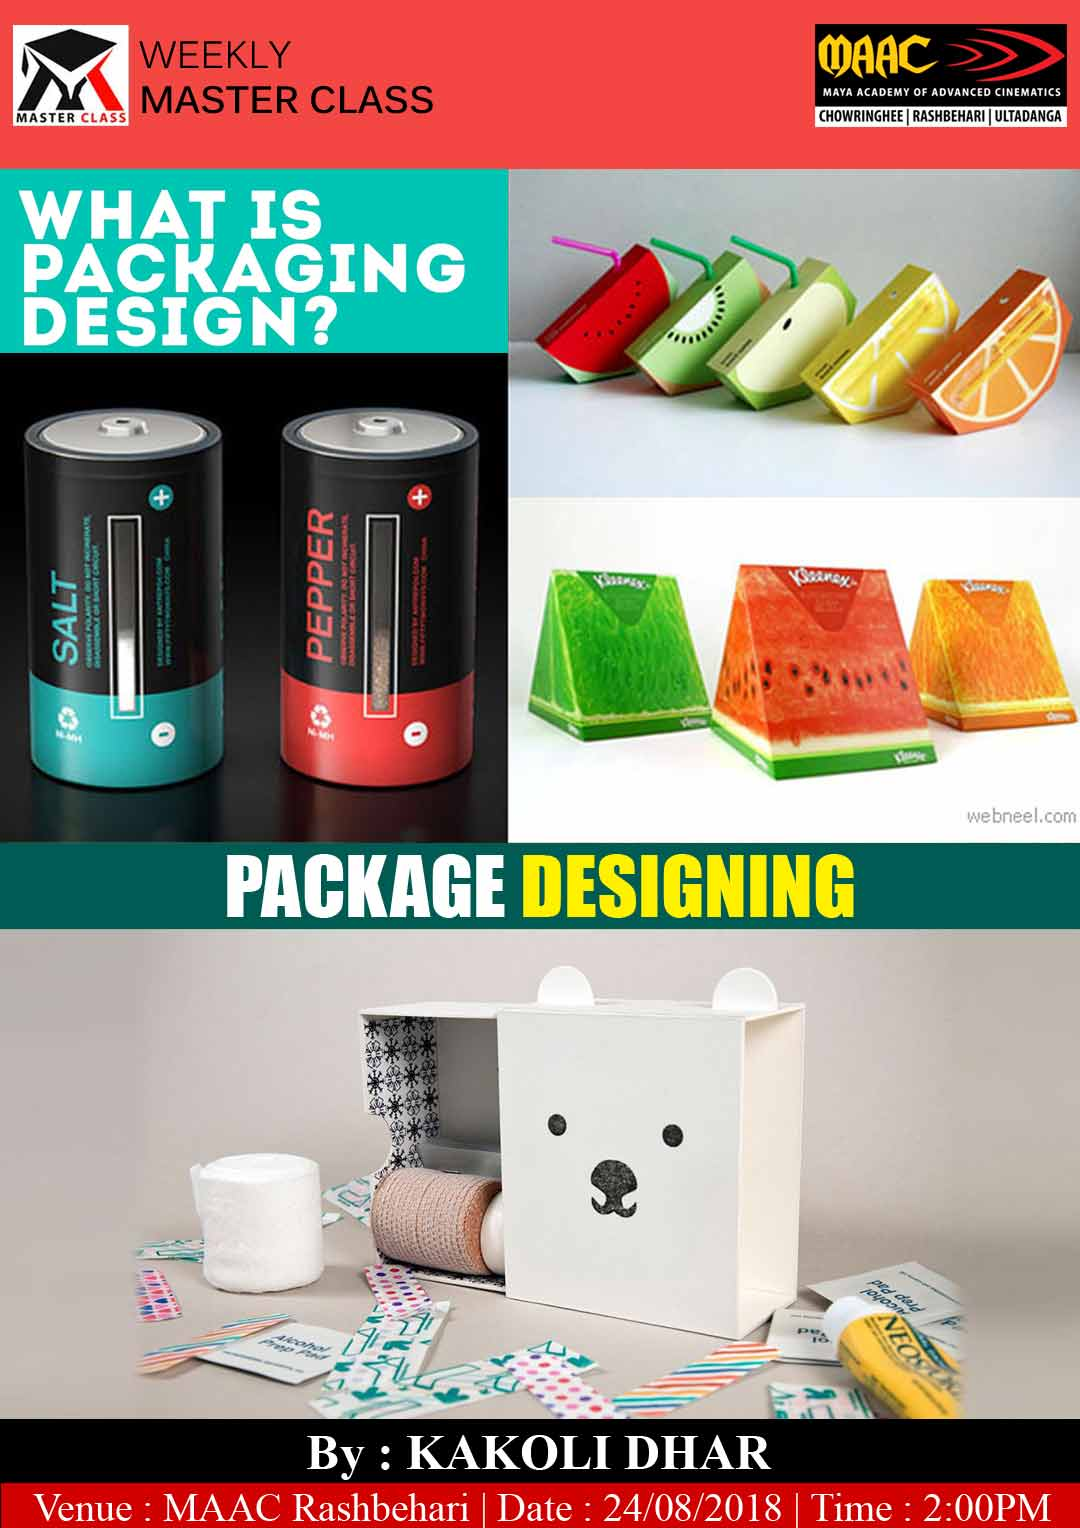 Weekly Master Class on Package Designing